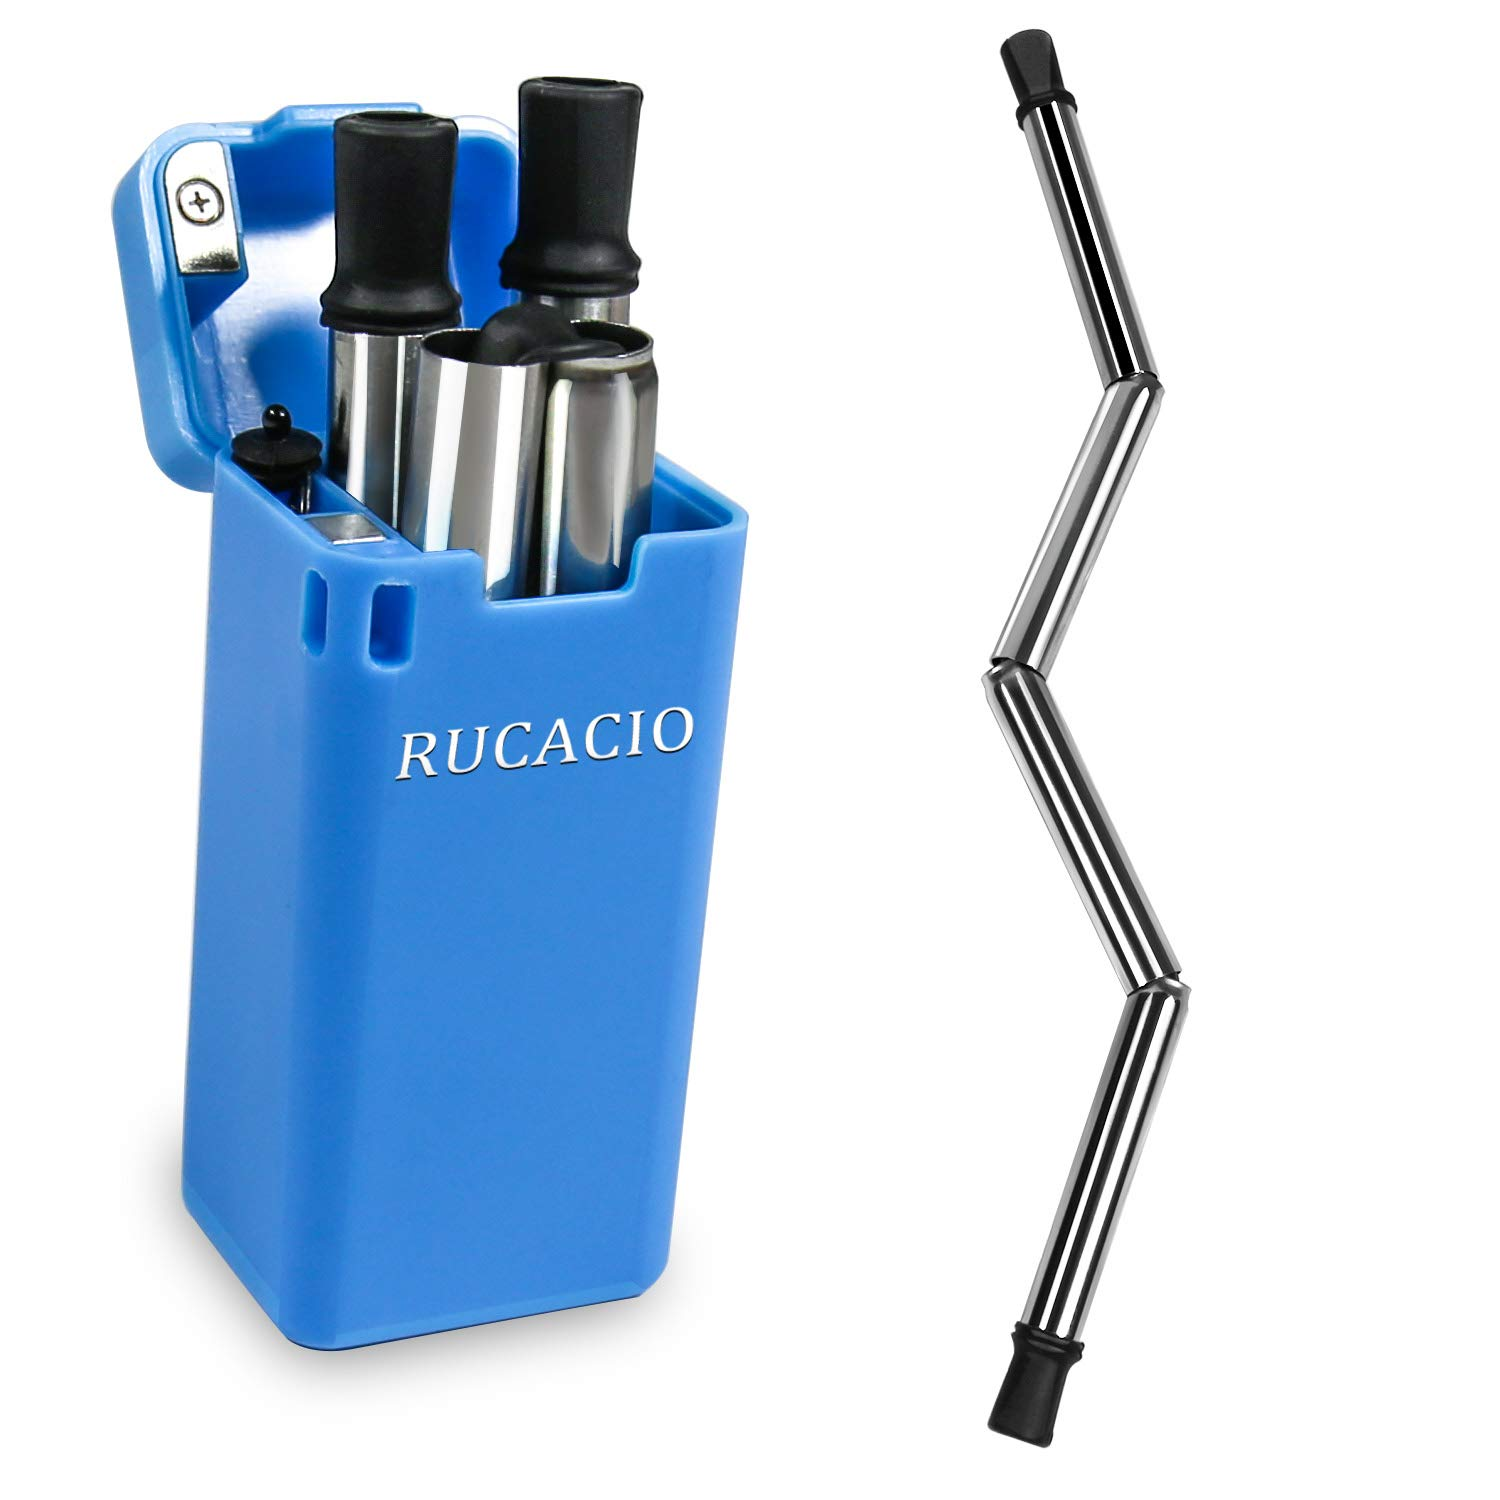 RUCACIO Collapsible Reusable Stainless Straw Medical-Grade Food-Grade Drinking Straws Portable with Hard Case Cleaning Brush